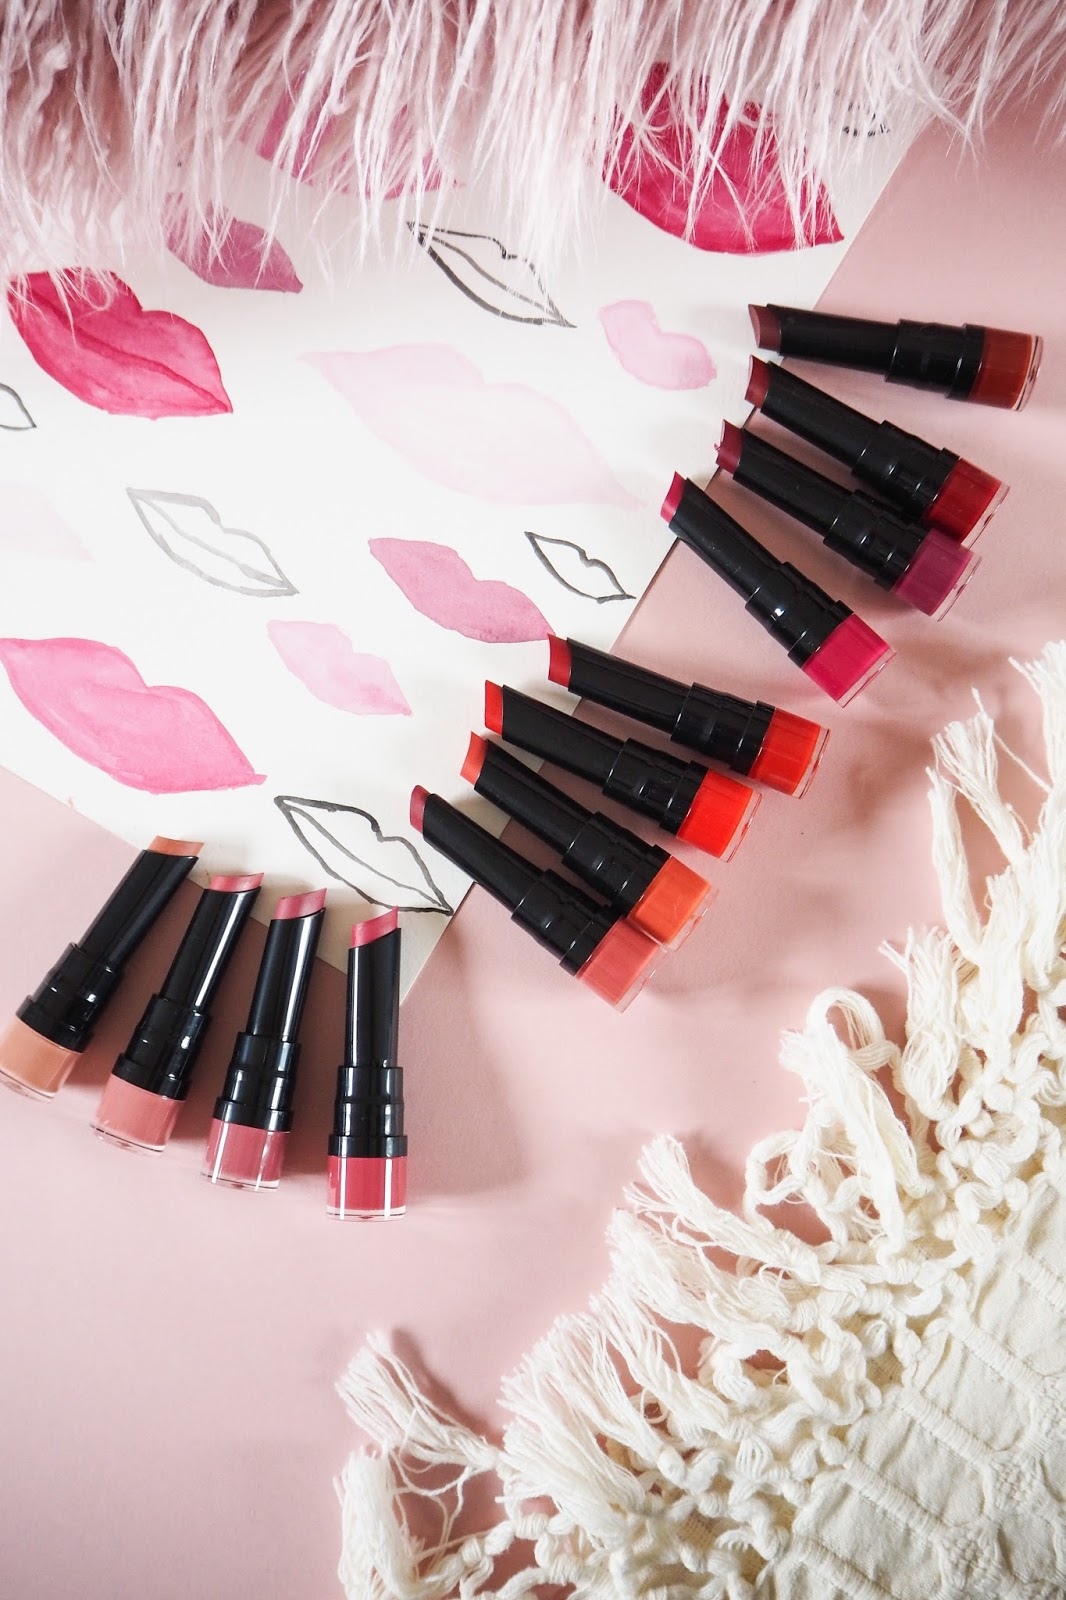 12 colours of the Bourjois Rouge Velvet The Lipstick